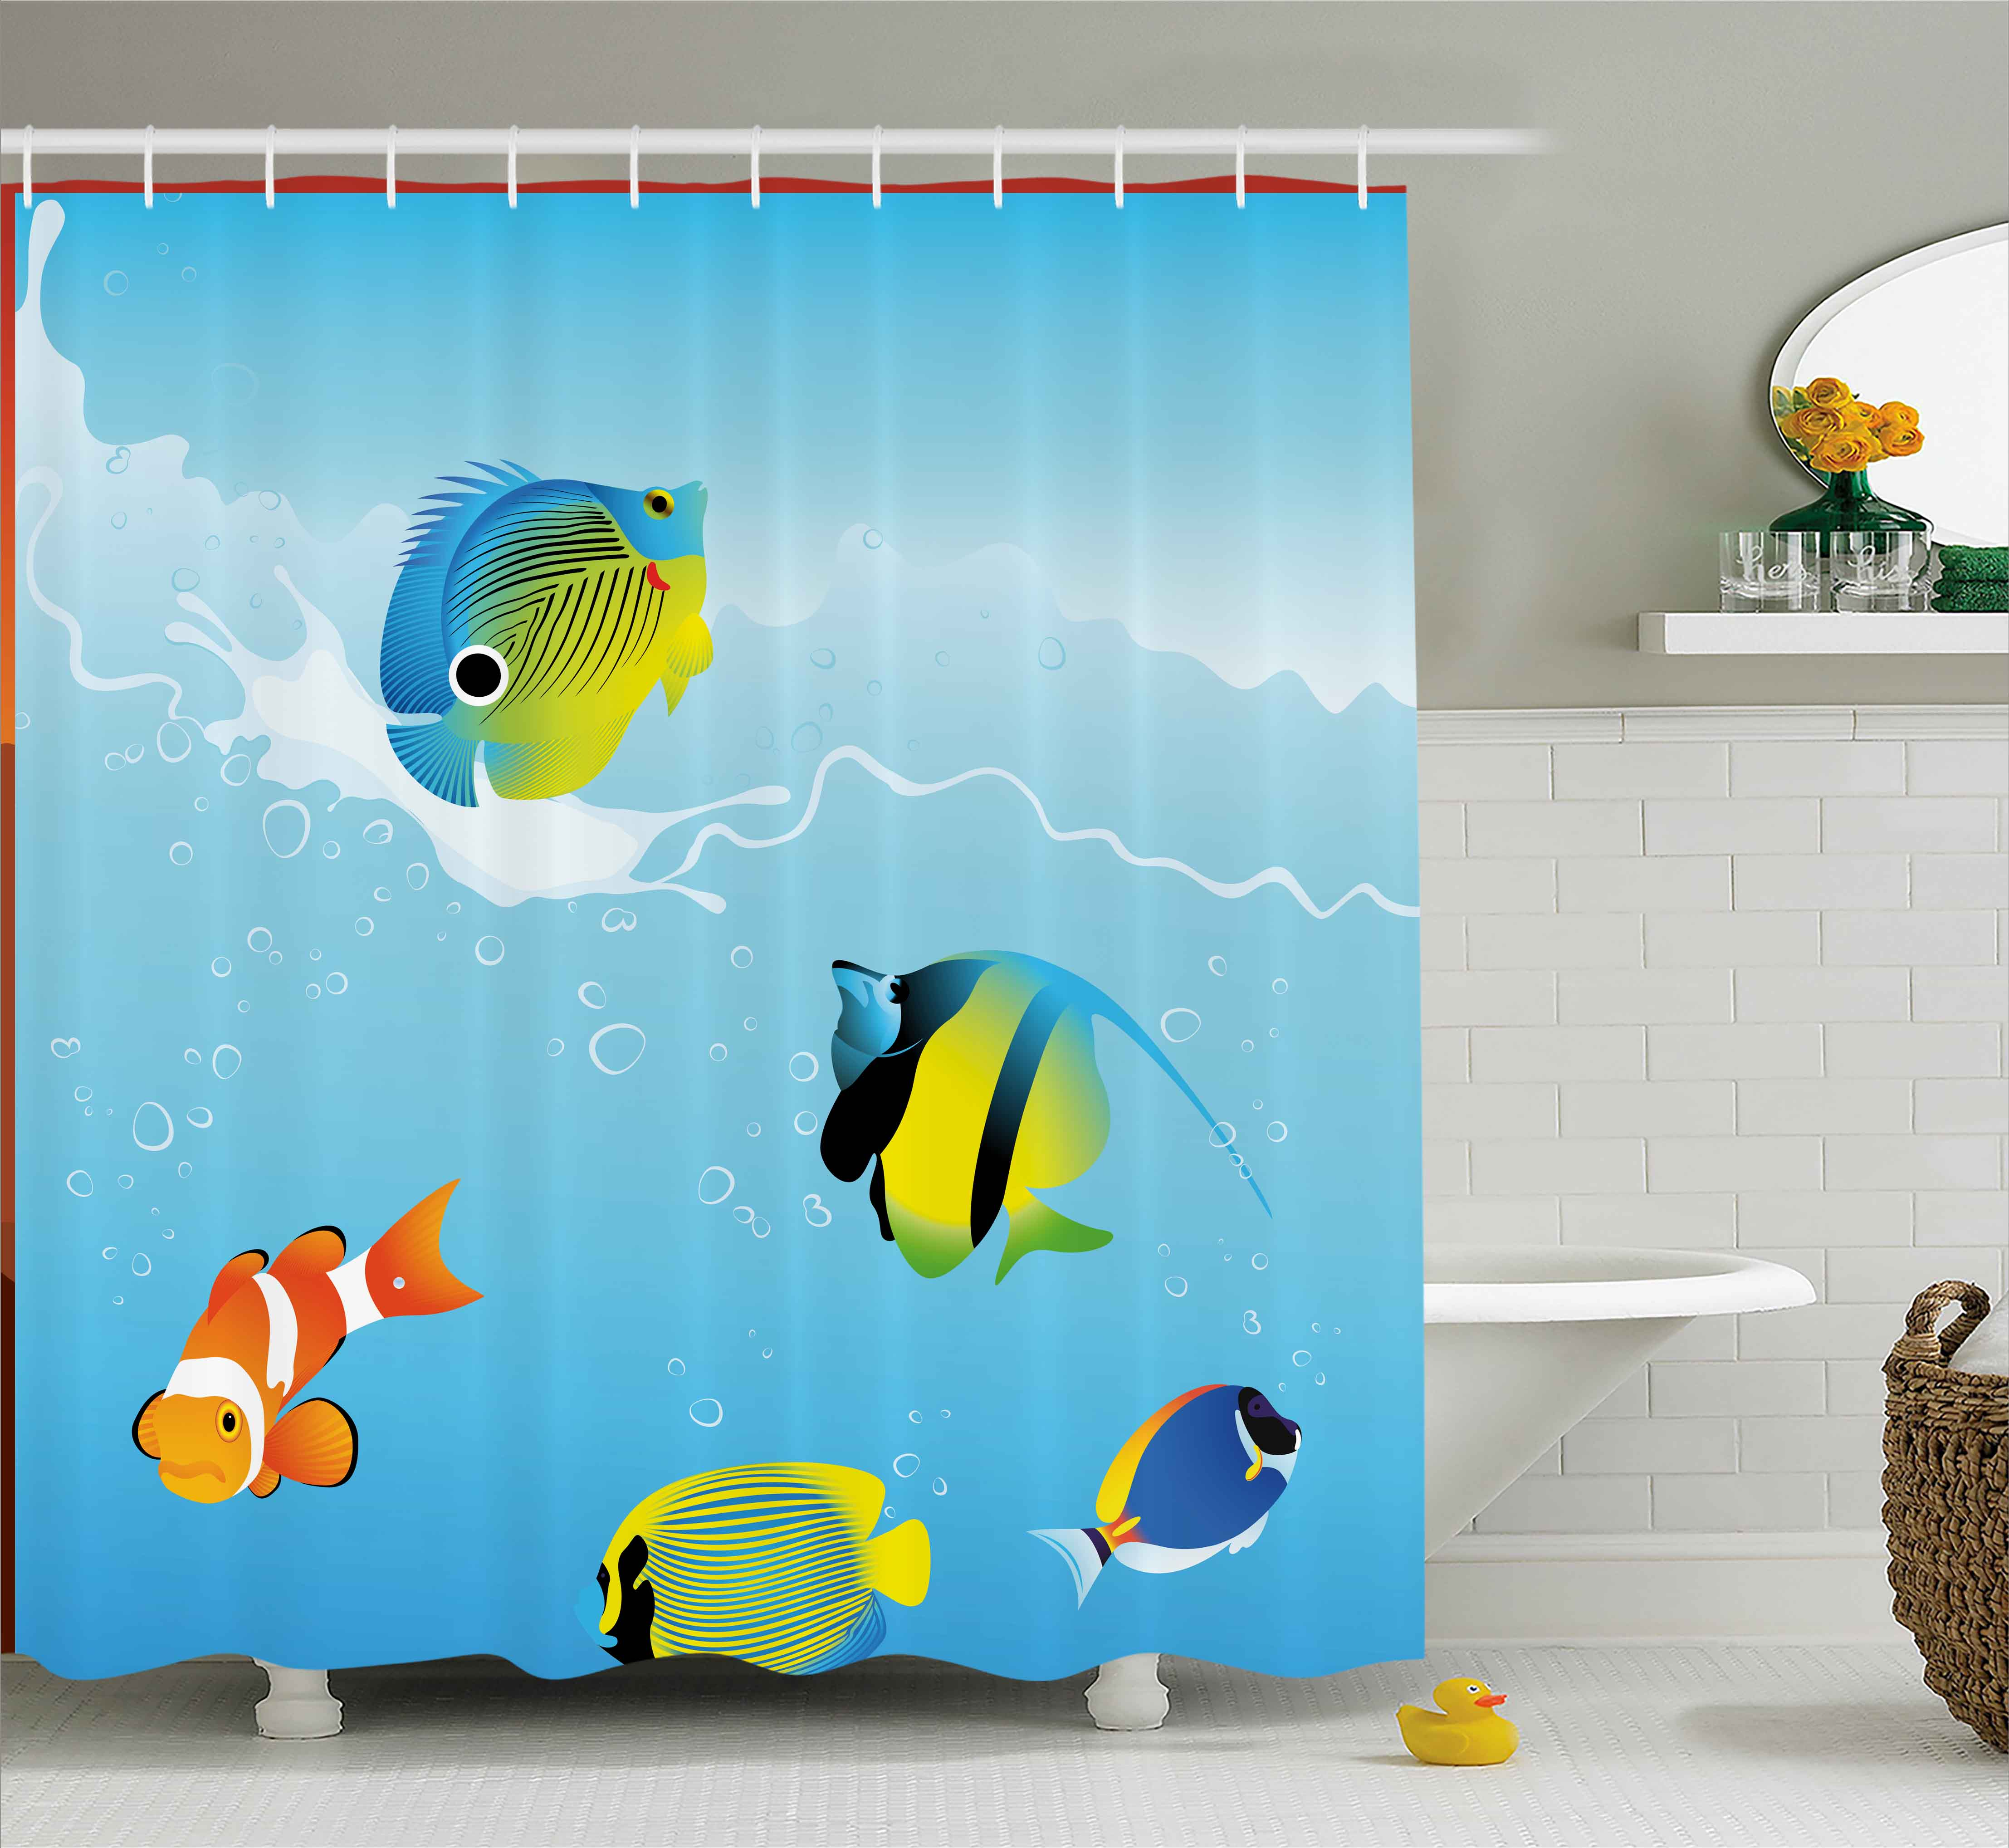 Ocean Shower Curtain, Nautical Navy Deep Sealife Image with Exotic Tropical Exotic Little Fish, Fabric Bathroom Set with Hooks, 69W X 70L Inches, Blue Orange and Yellow, by Ambesonne